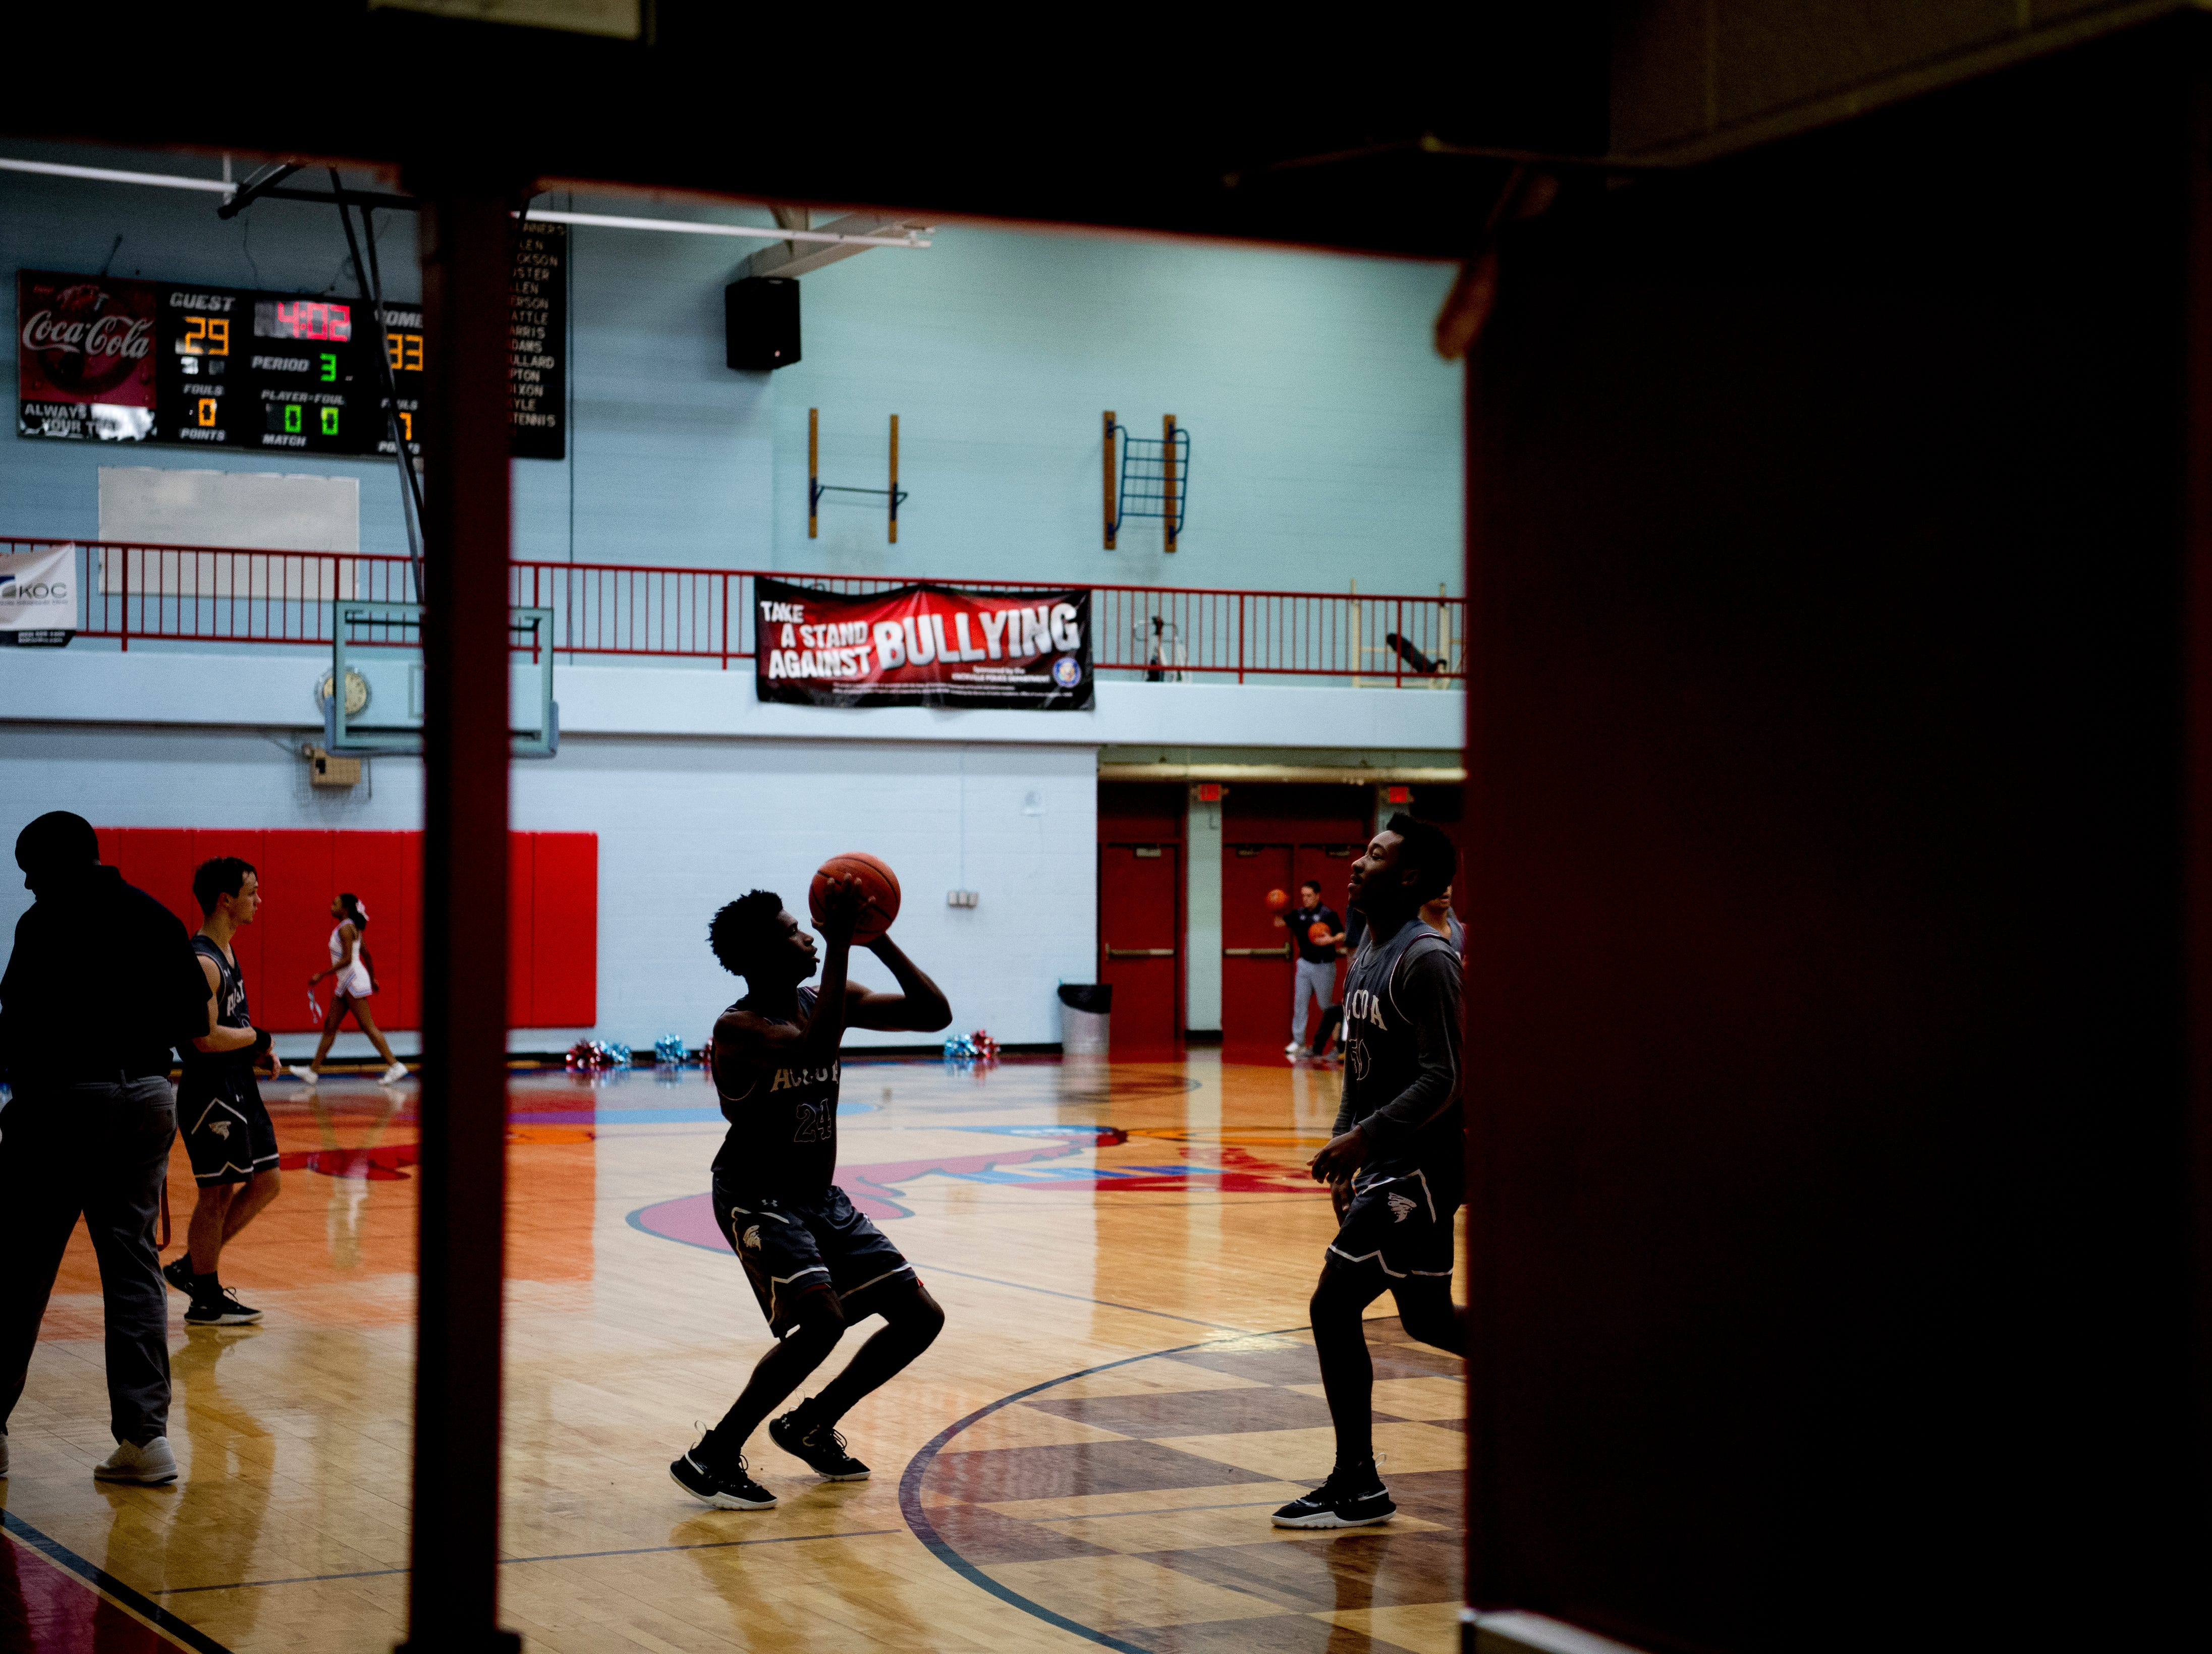 Alcoa players warm up during a game between Austin-East and Alcoa at Austin-East High School in Knoxville, Tennessee on Friday, January 18, 2019.